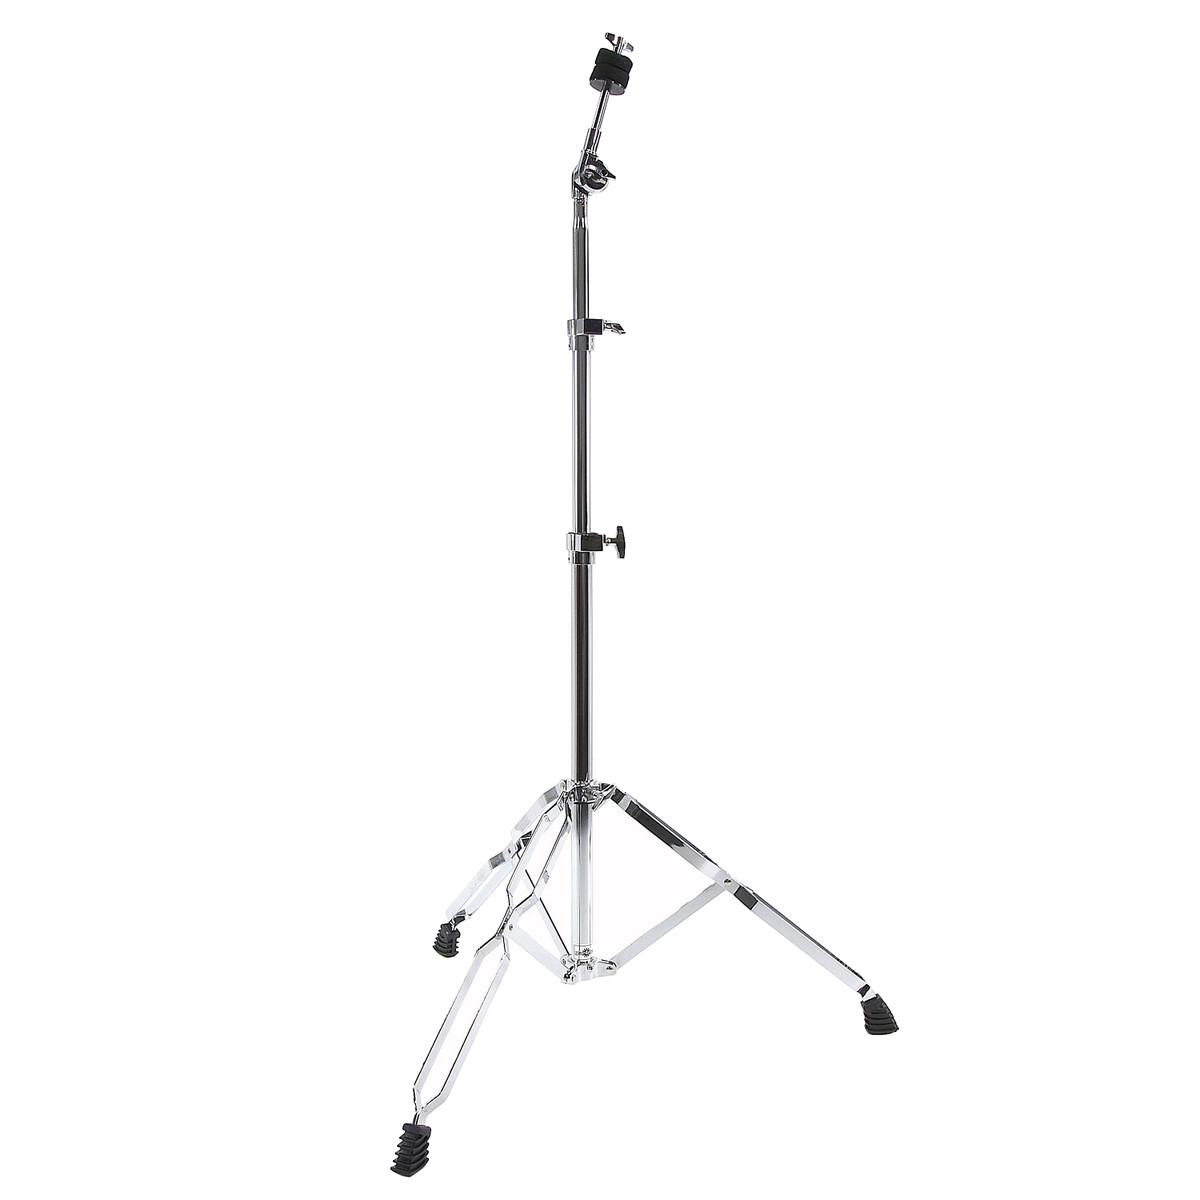 Image of Cymbal Stand by Gear4music